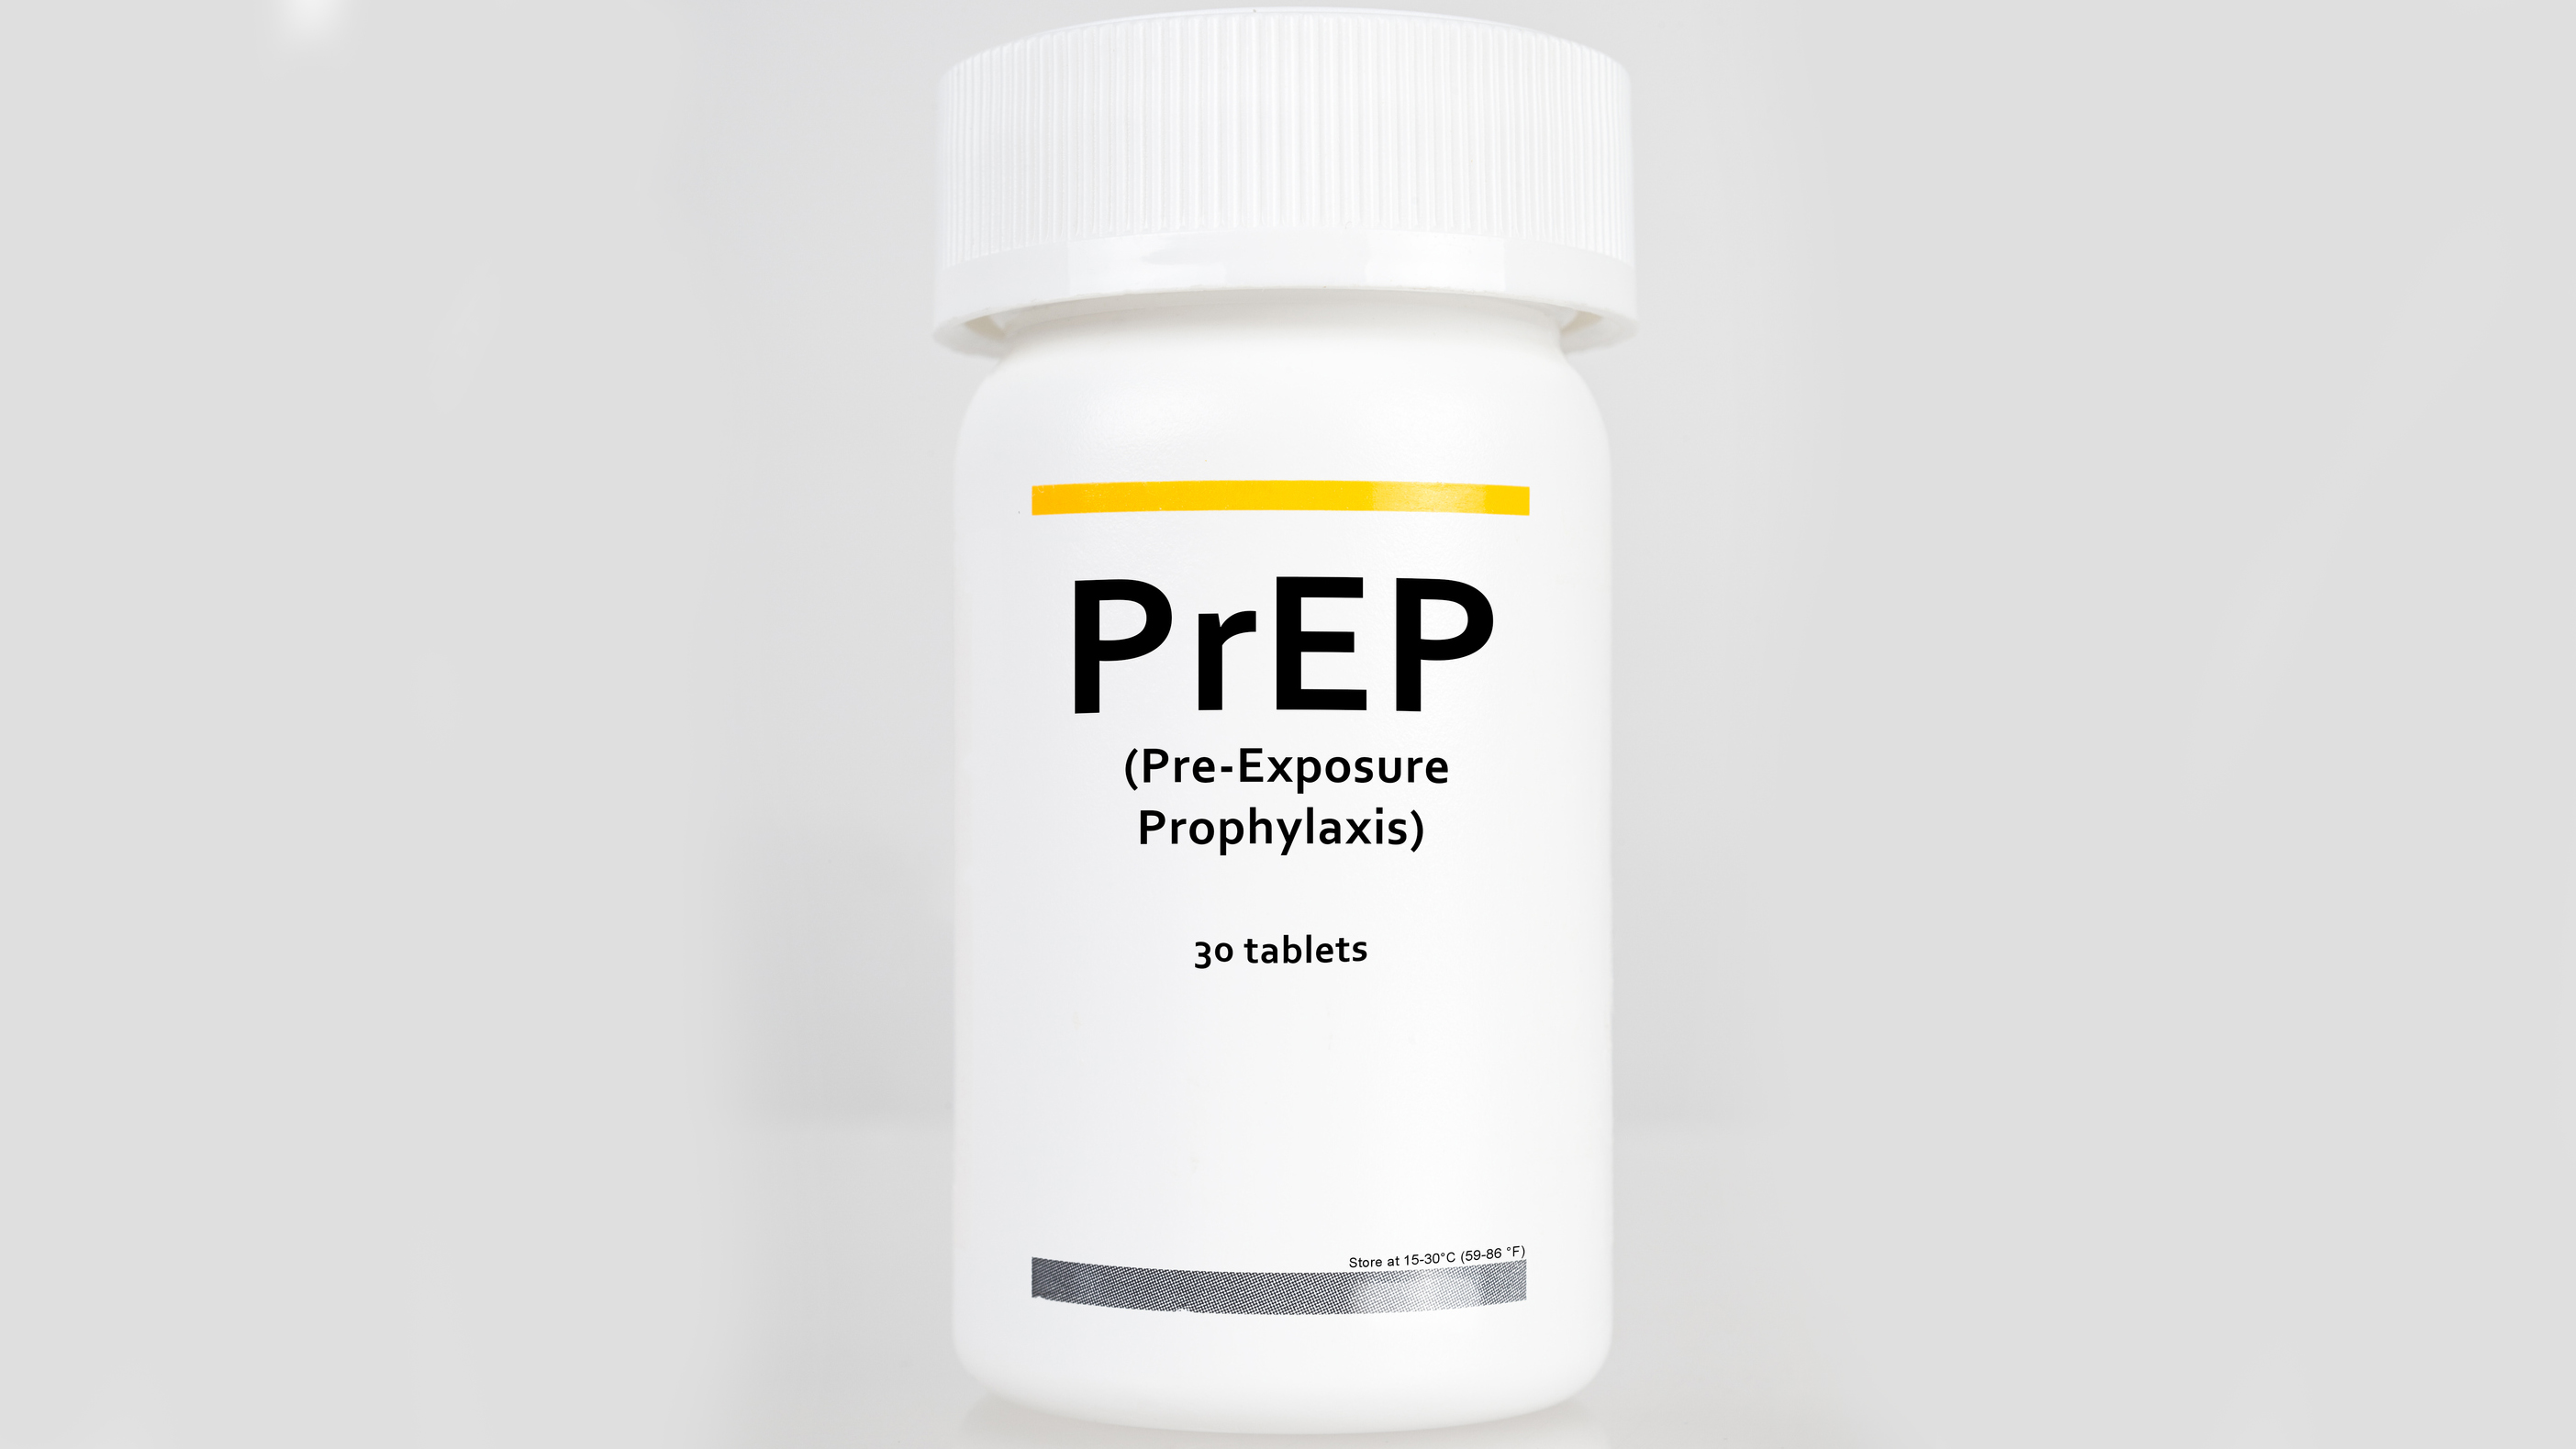 Successful Pilot Integrates PrEP and Syringe Exchange Services to Increase Arsenal of HIV Prevention Tools for Women Who Inject Drugs